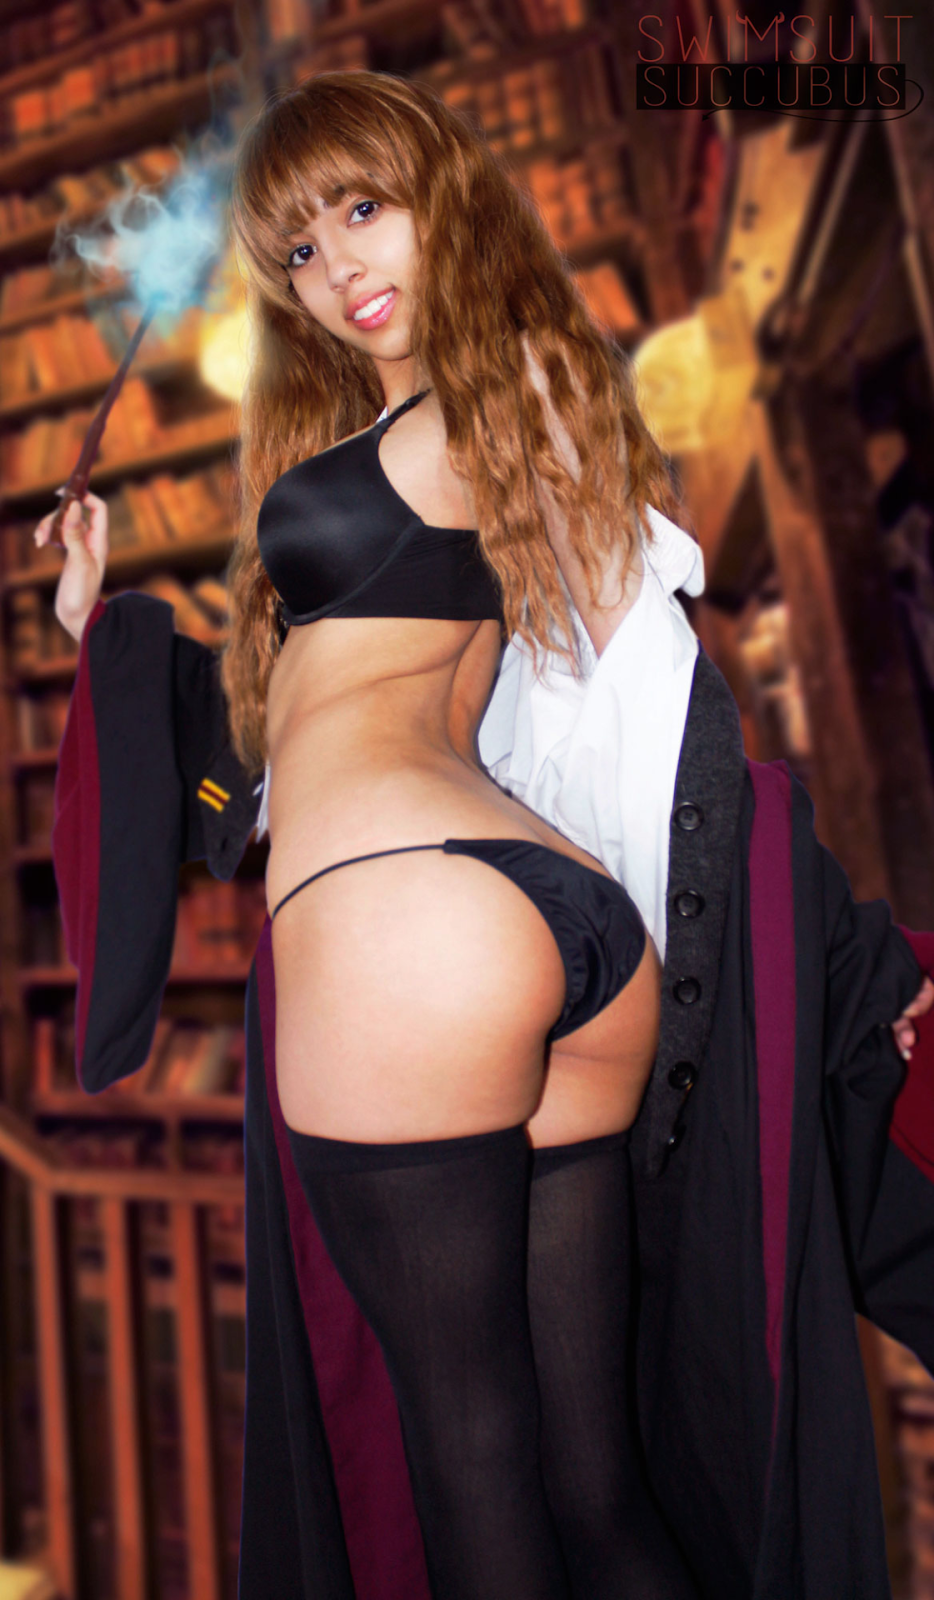 Pin By Sal Valoy On Swimsuit Suc  Harry Potter Cosplay -2216